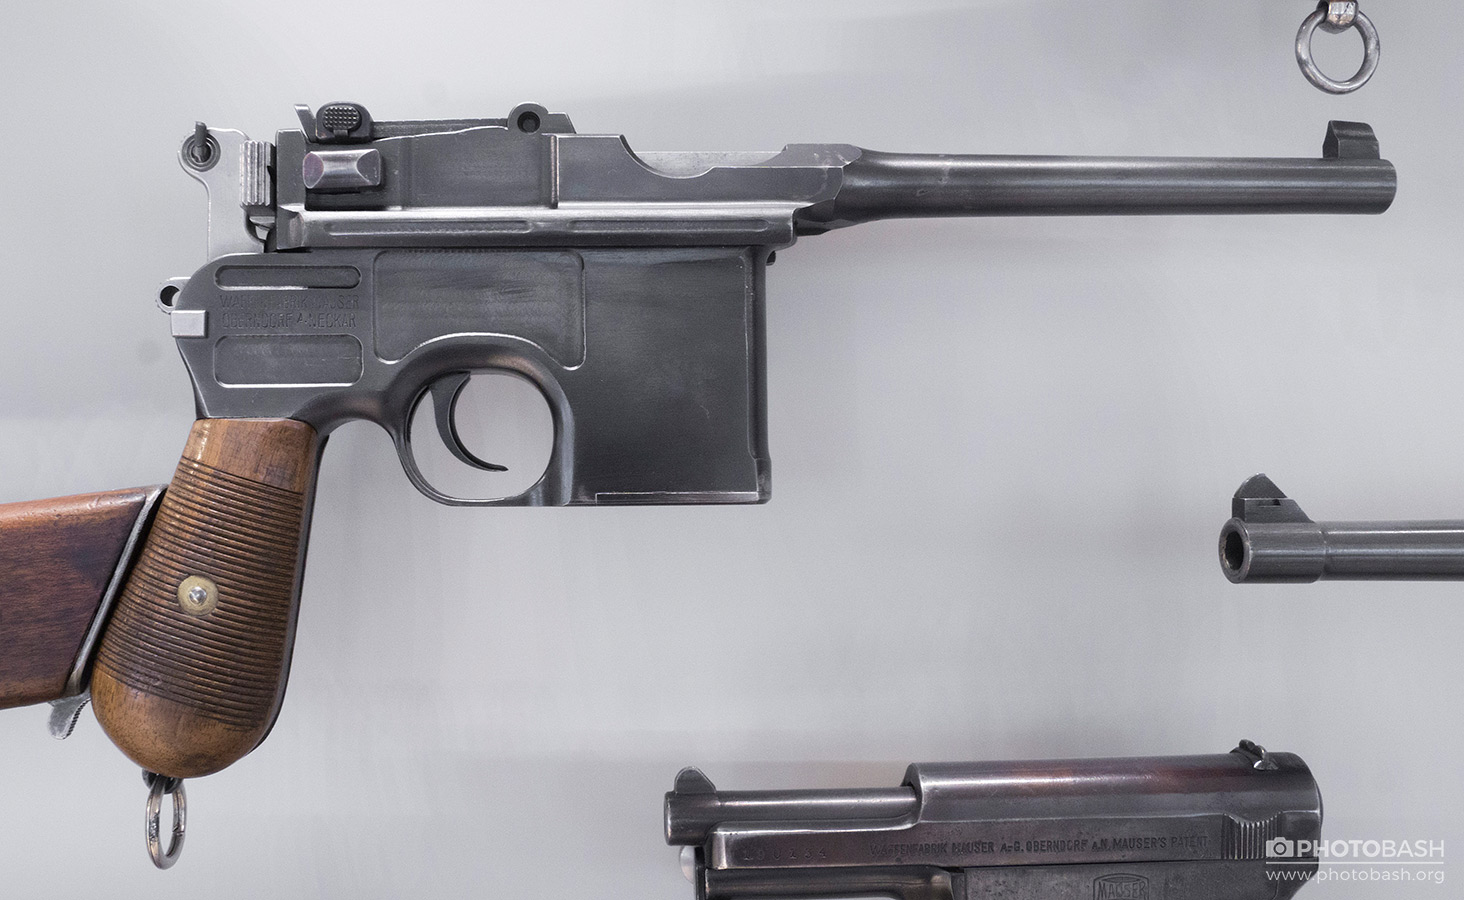 World-War-Weapons-Pistol-Gun.jpg